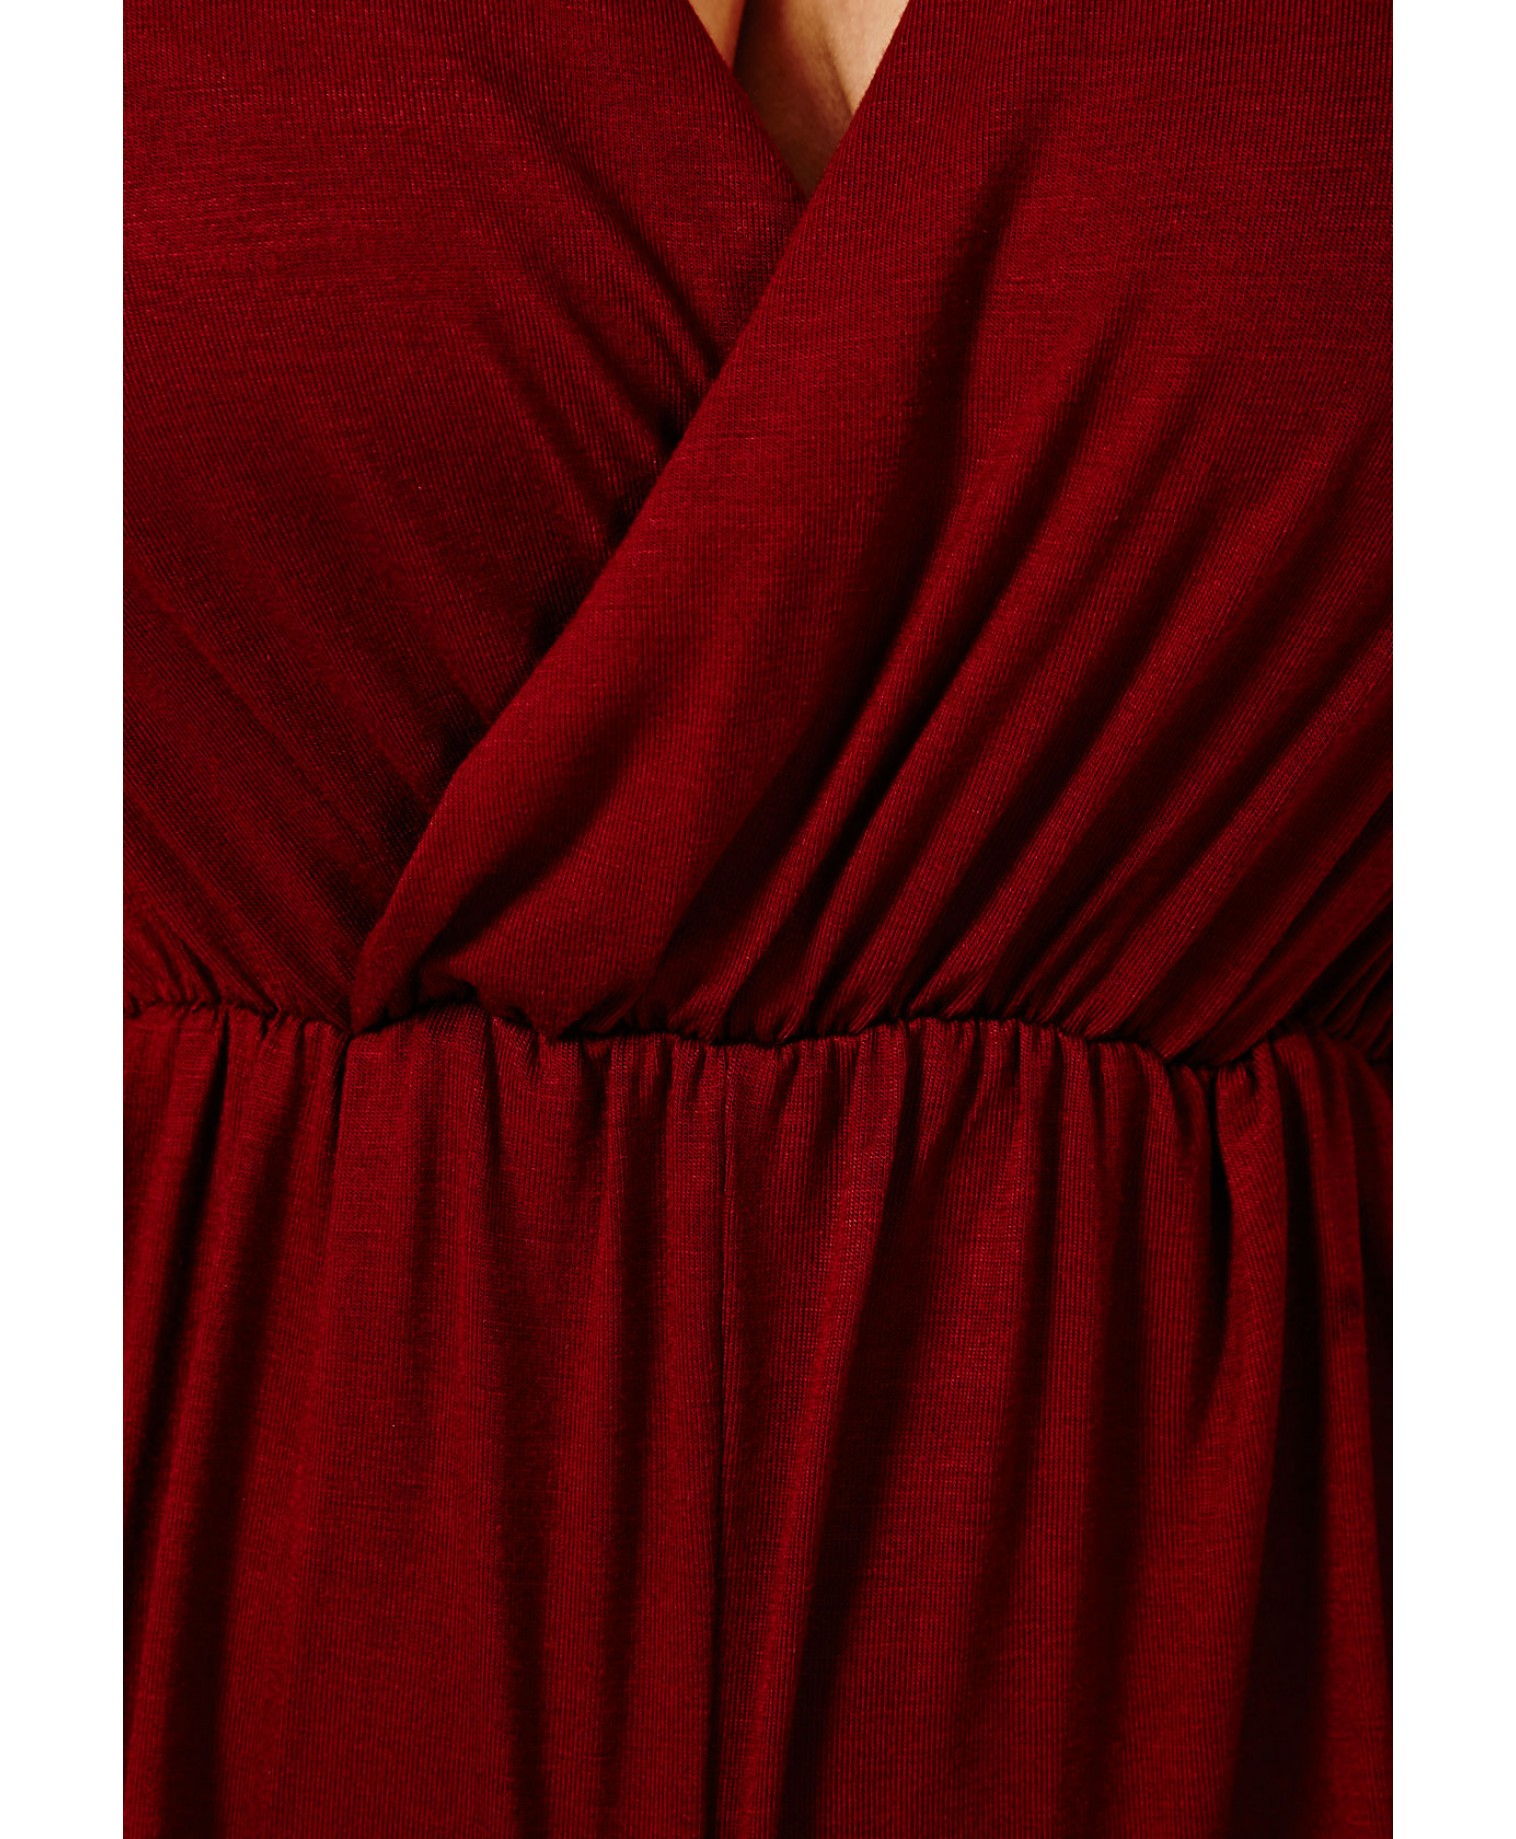 90f1a355f89 Lyst - Missguided Migle Plunge Neck Playsuit in Burgundy in Red